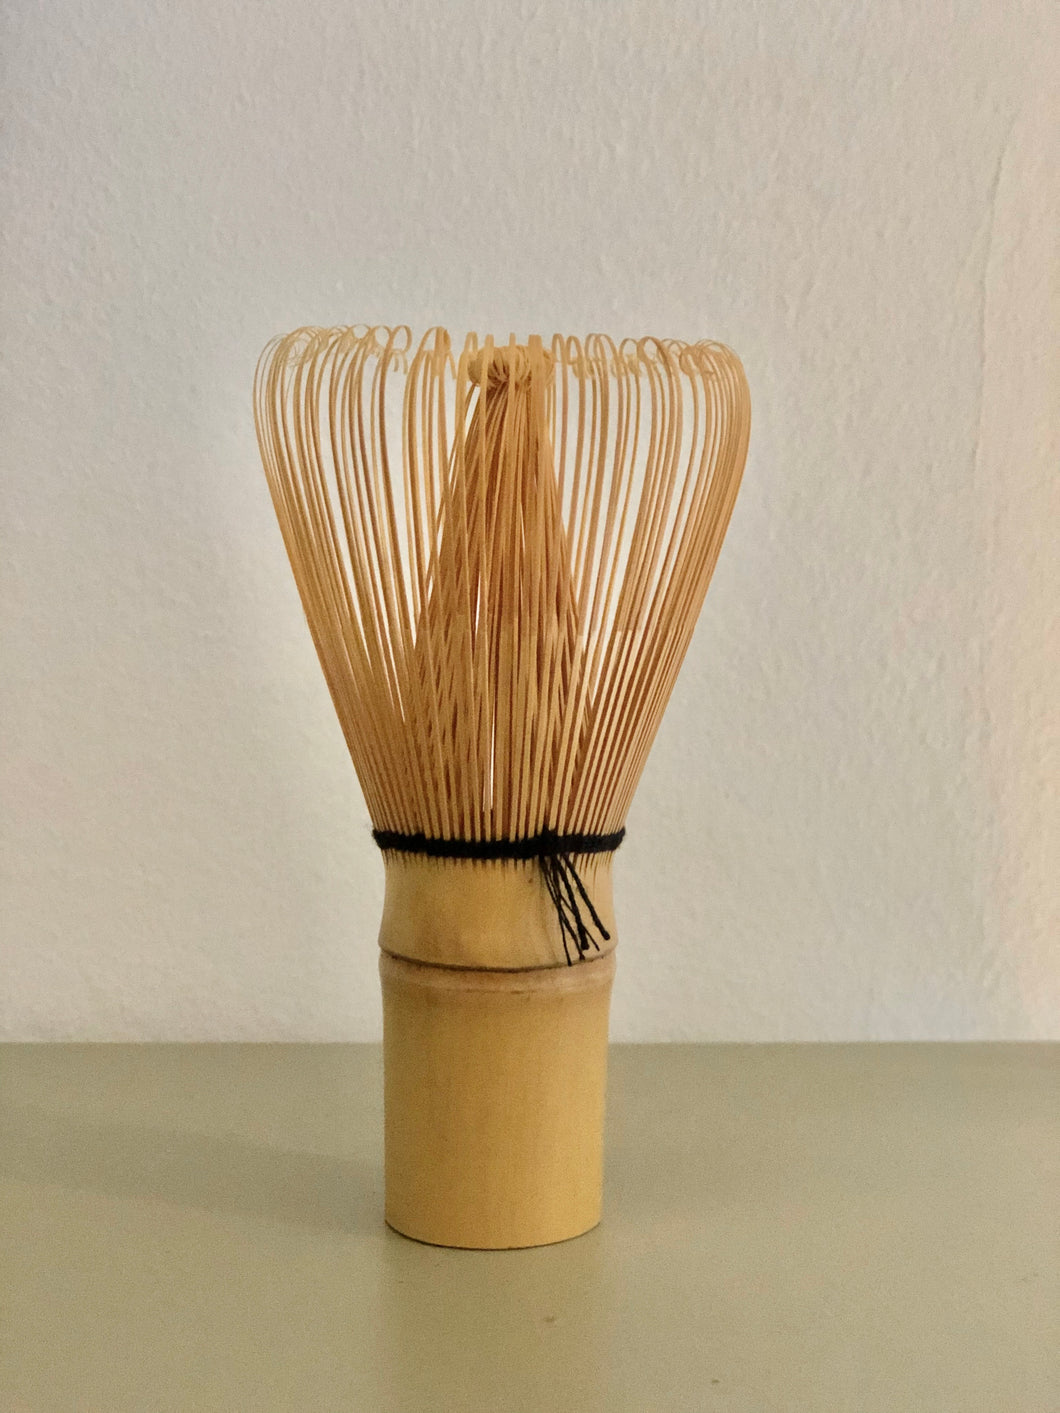 Matcha Tea Whisk - Bamboo